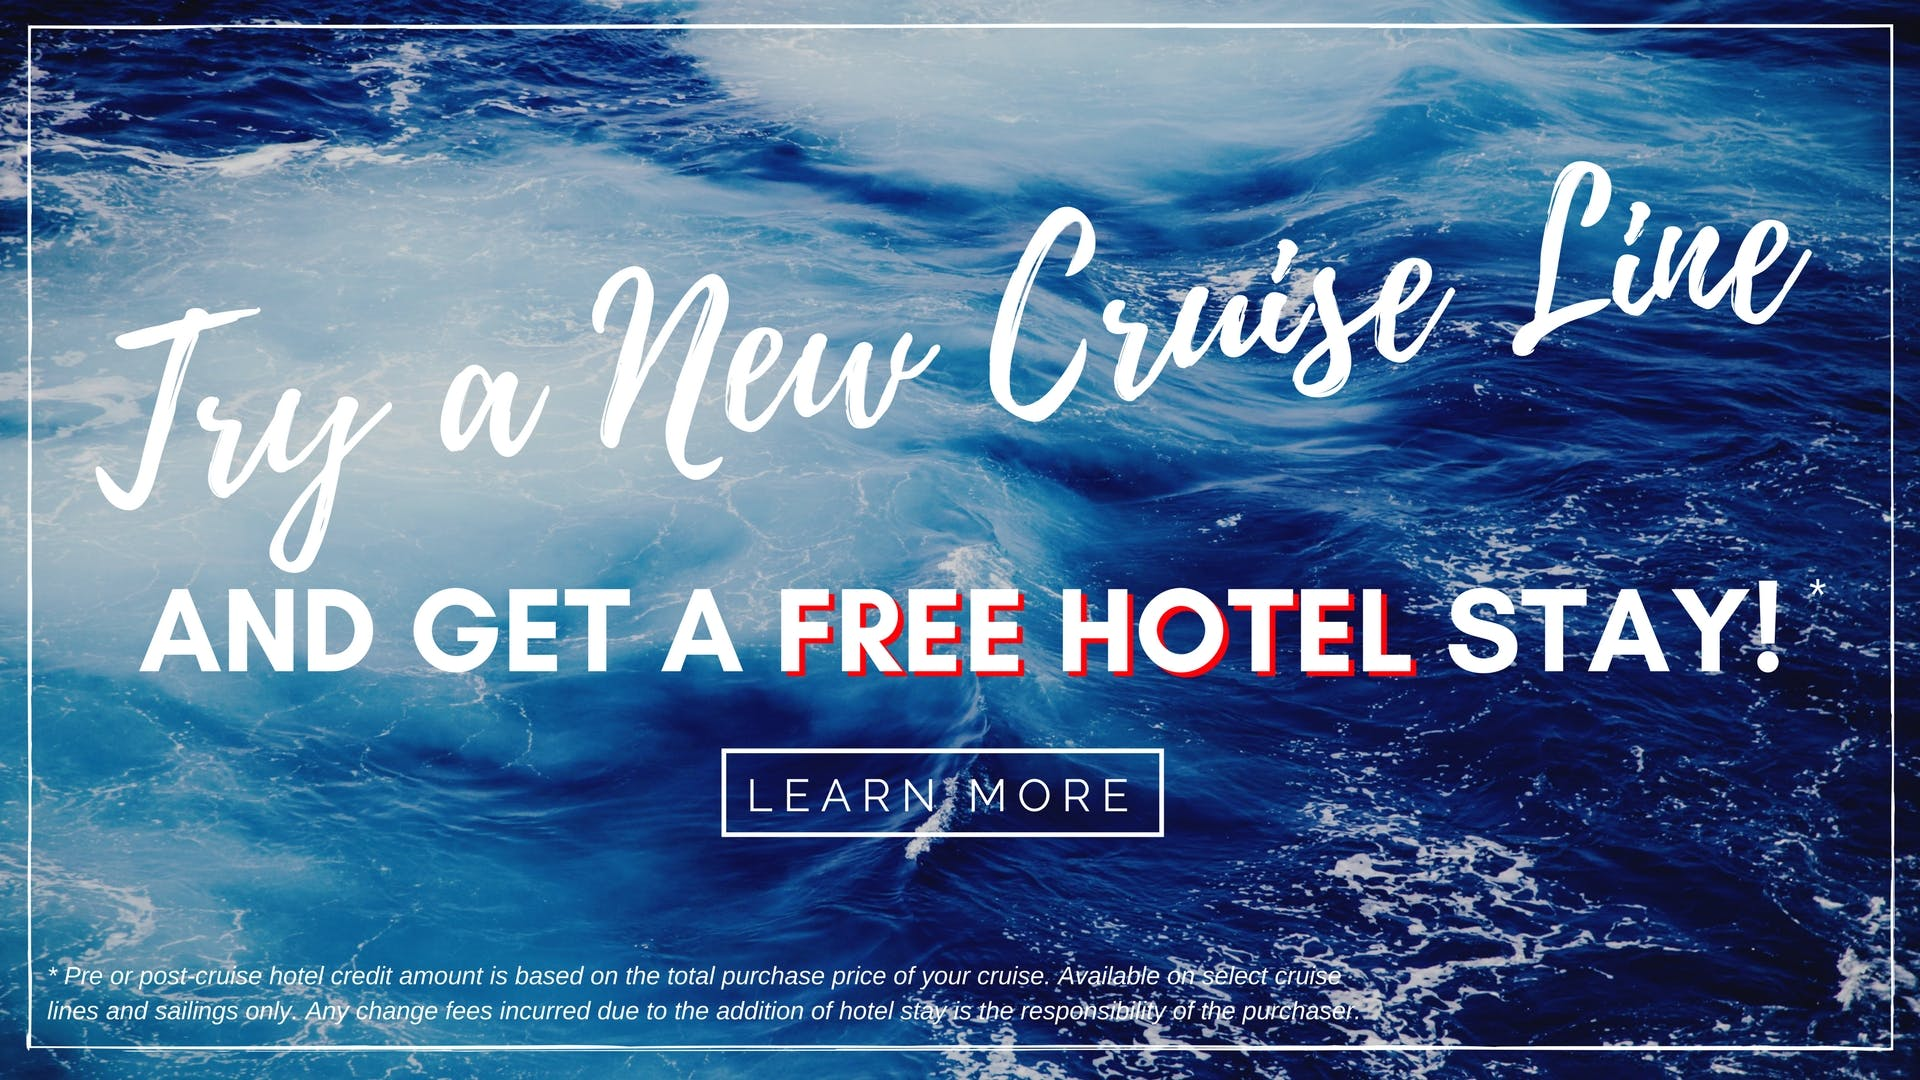 Try a new cruise line and get a free hotel night.